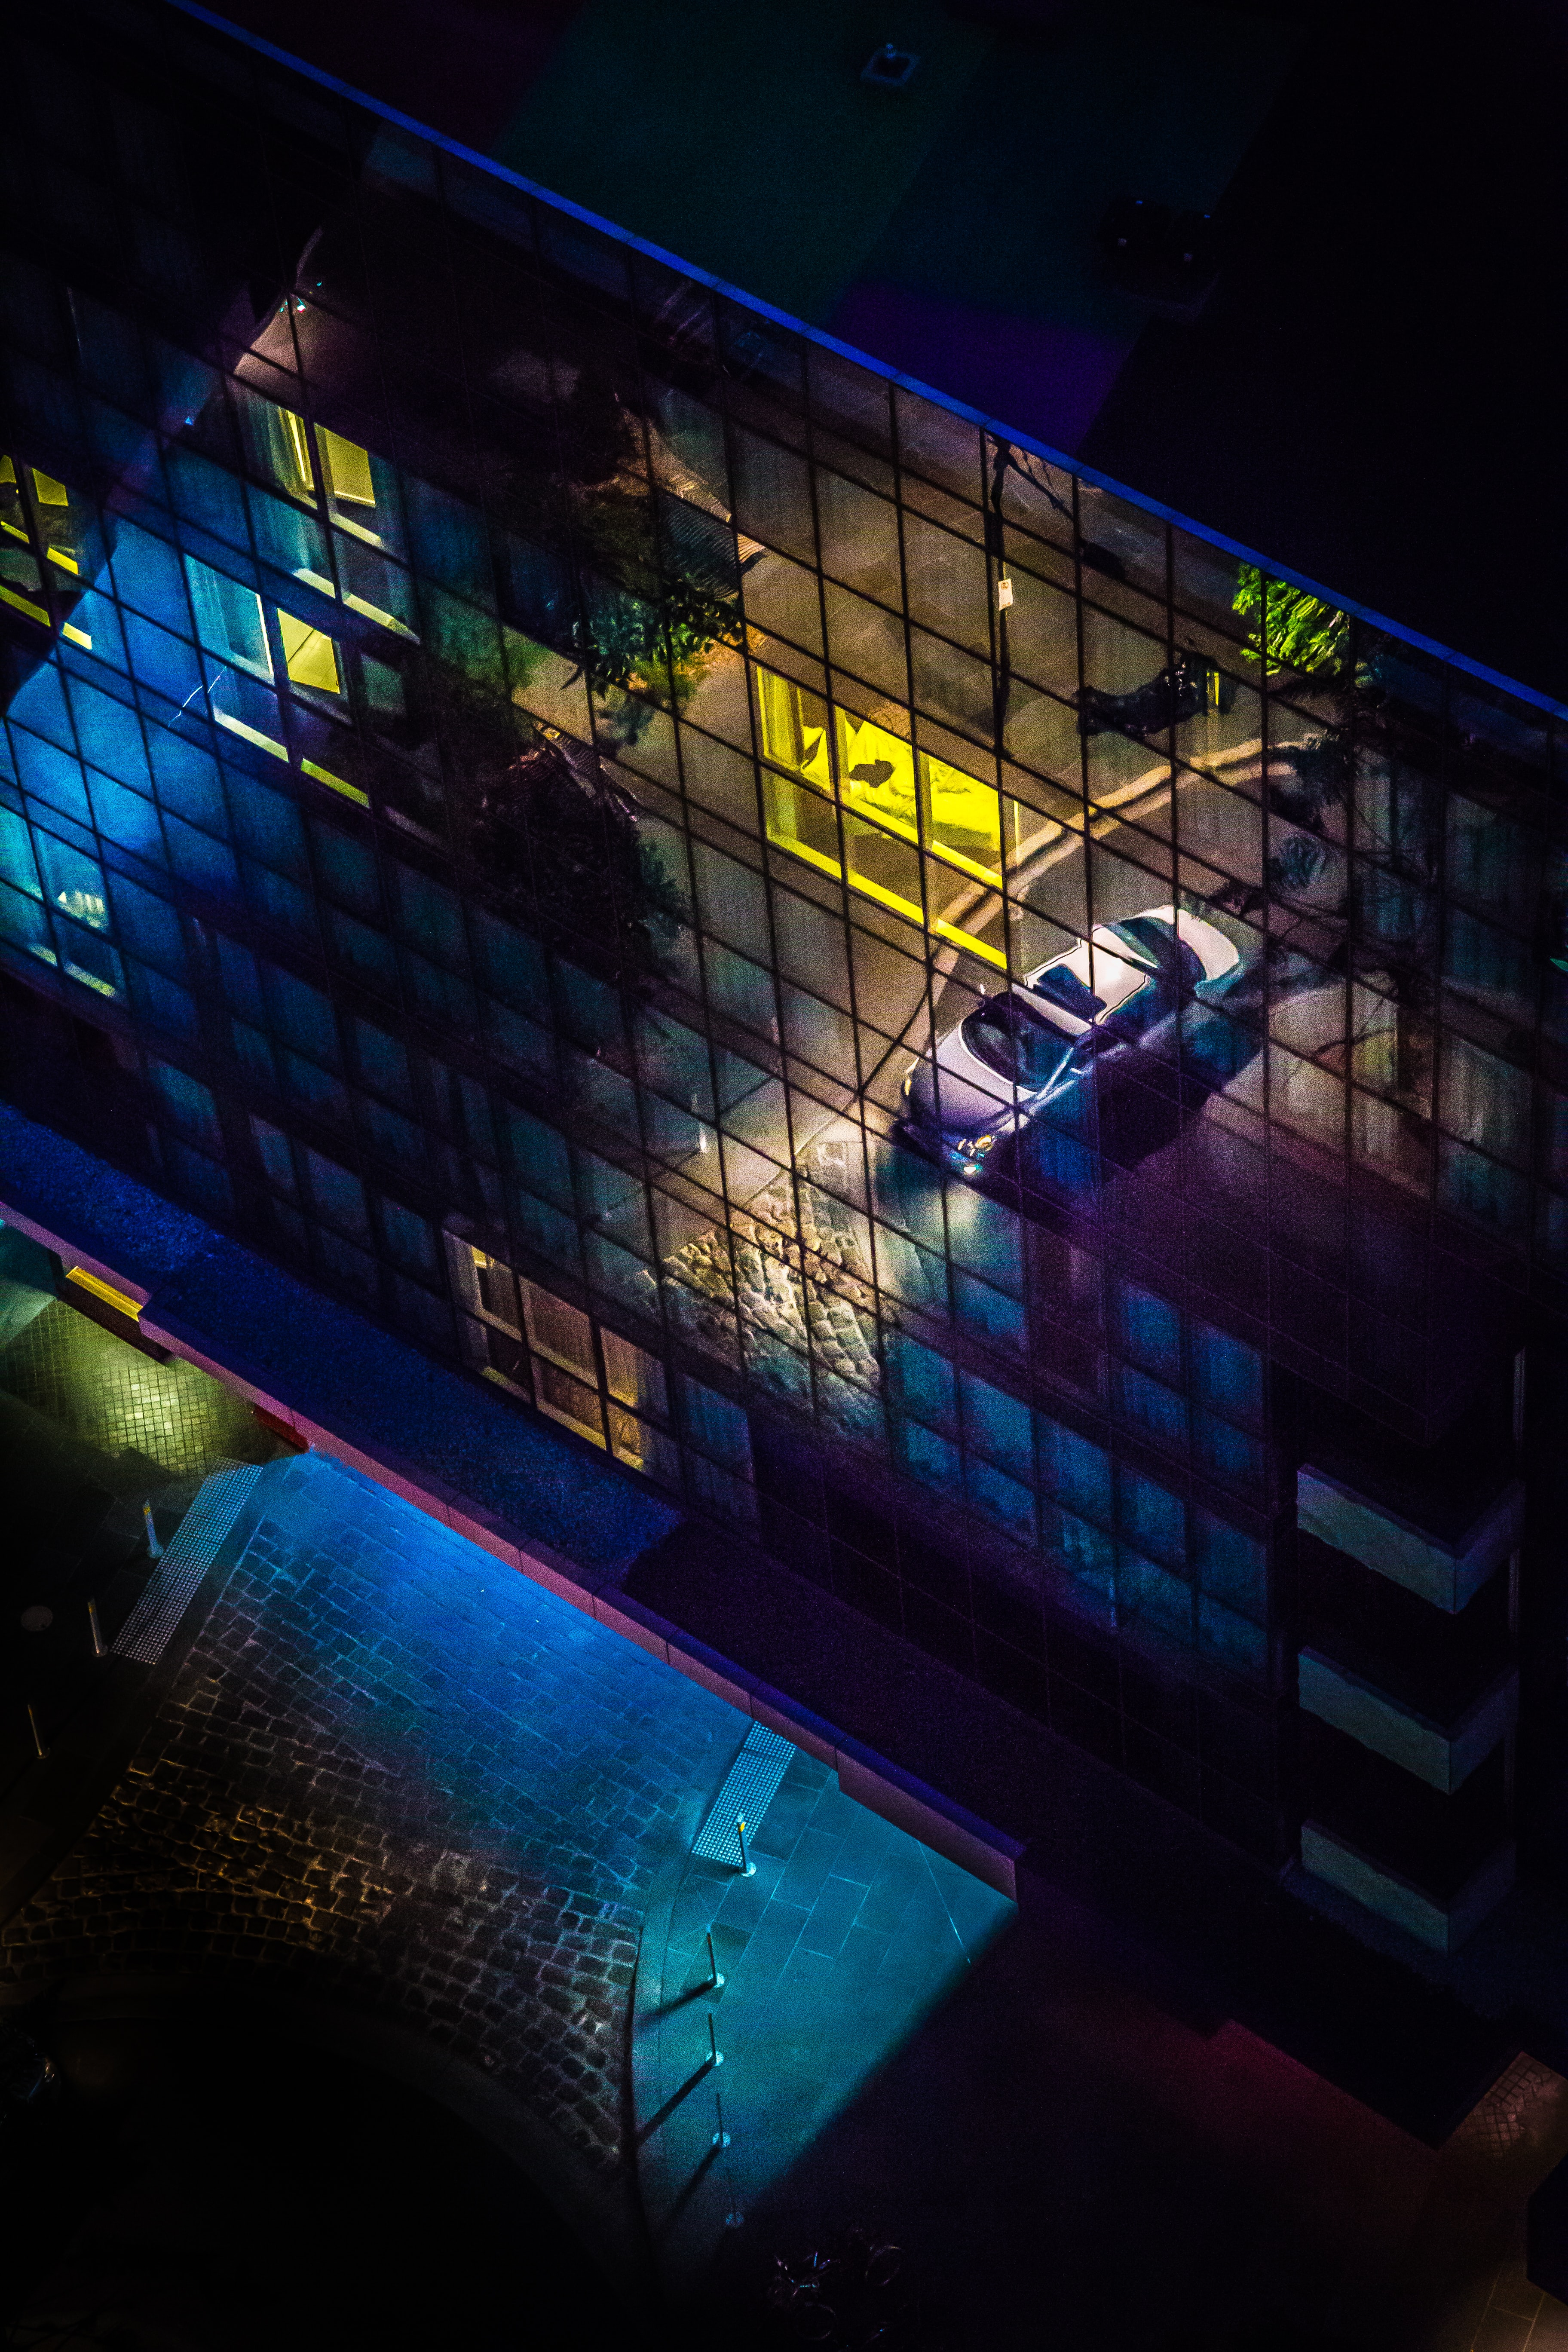 Reflection of car illuminated on building exterior in Docklands